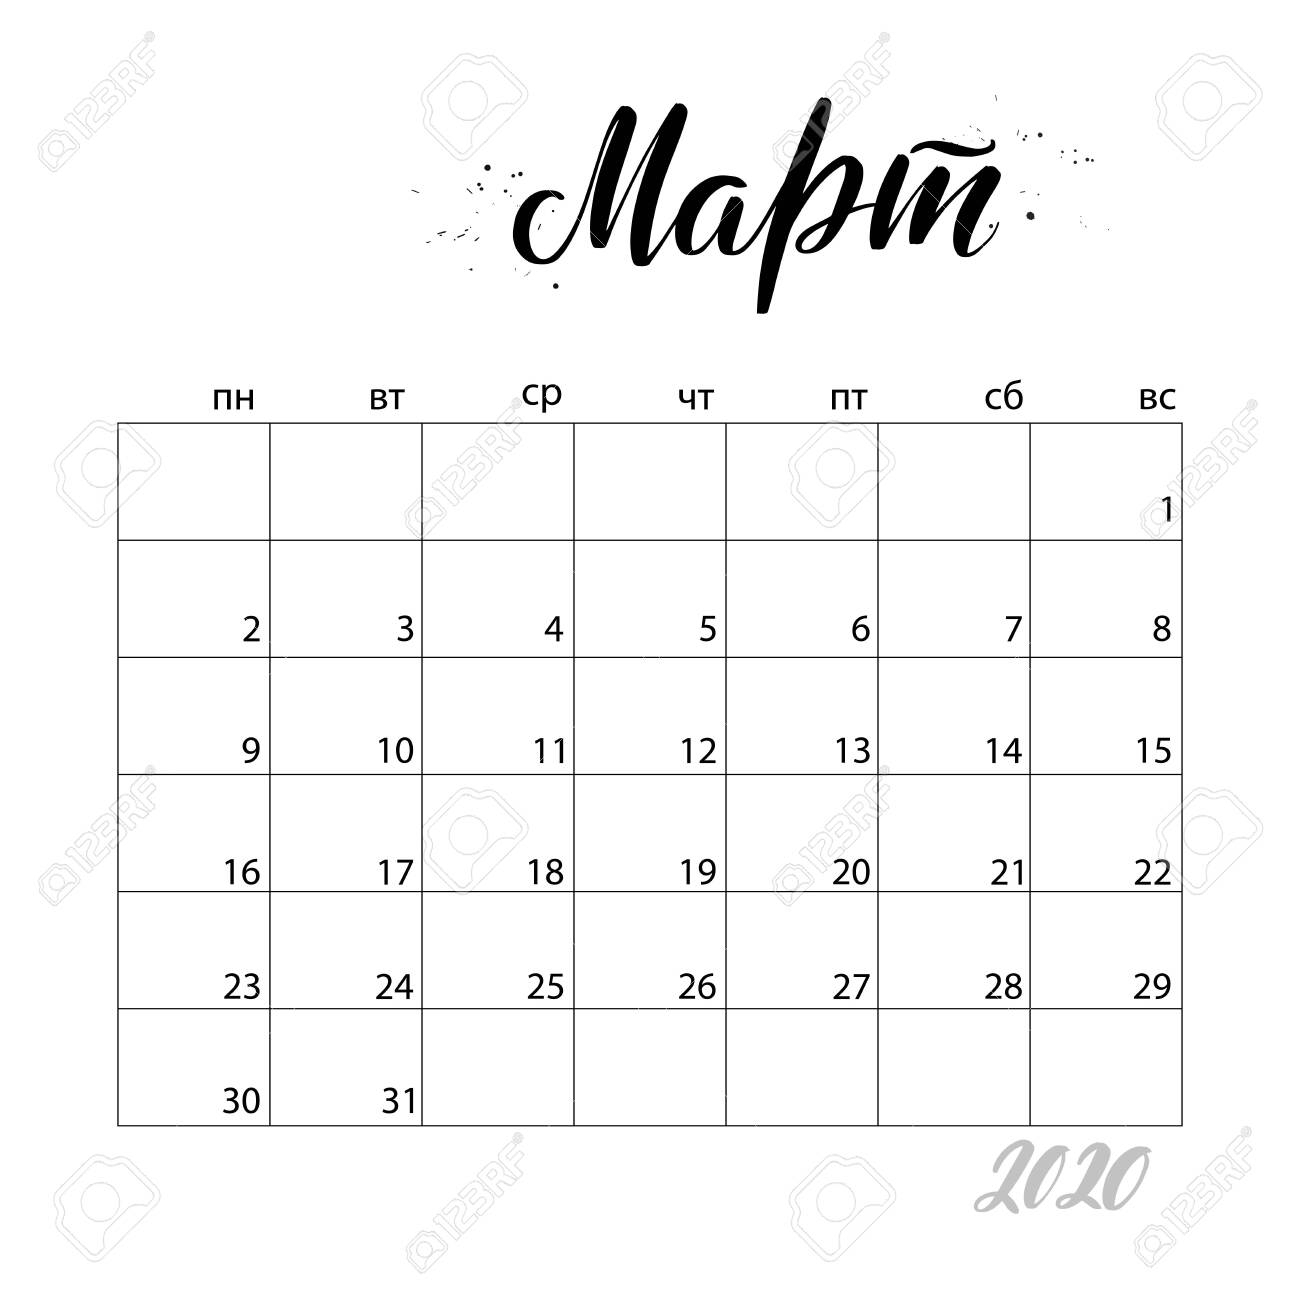 March. Monthly Calendar For 2020 Year. Handwritten Modern Calligraphy..